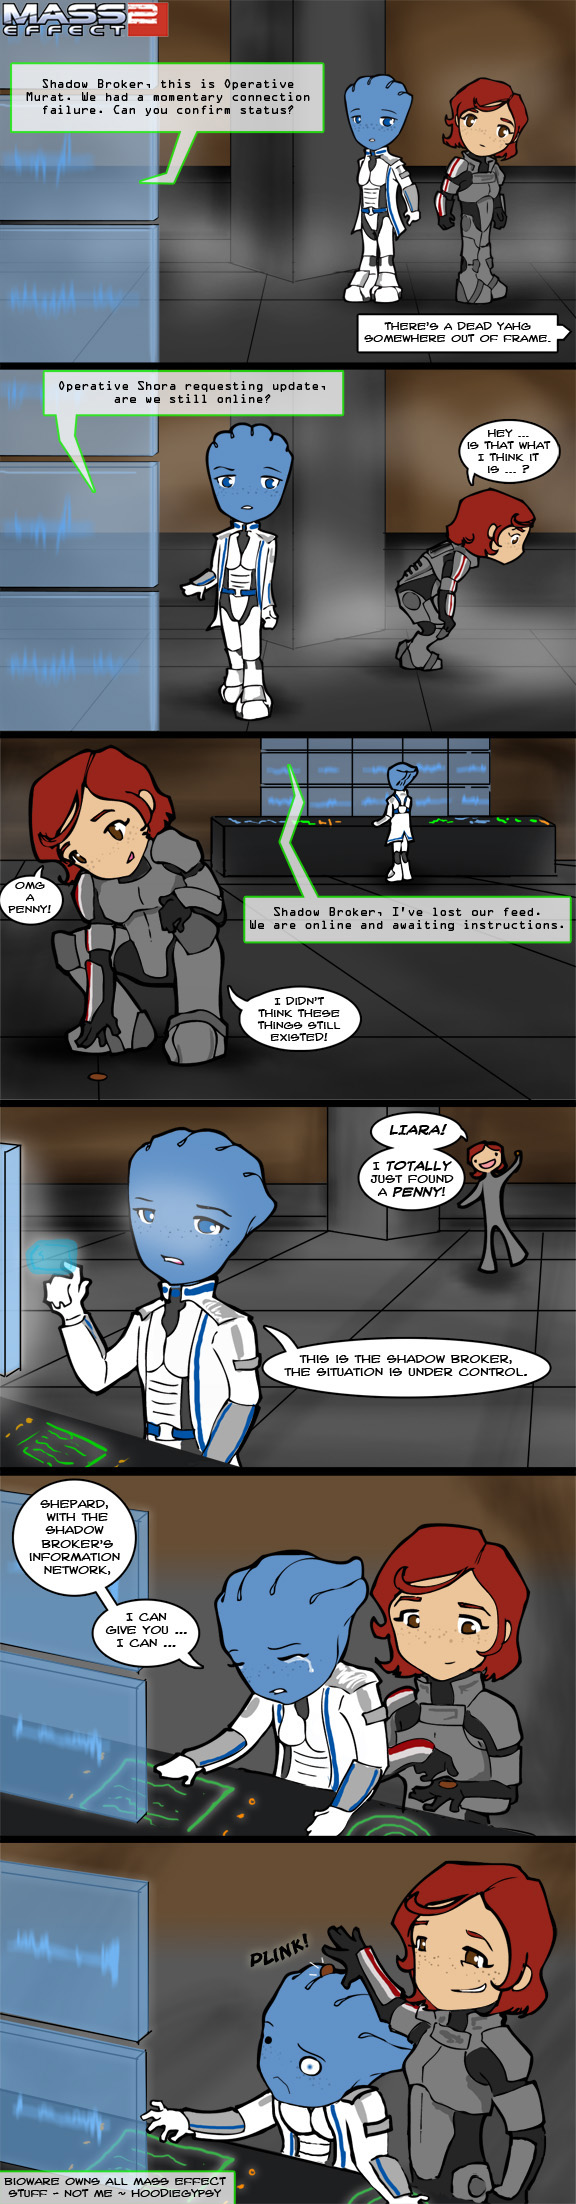 shepard_finds_a_penny_by_hoodie_gypsy-d4vo7v7.jpg